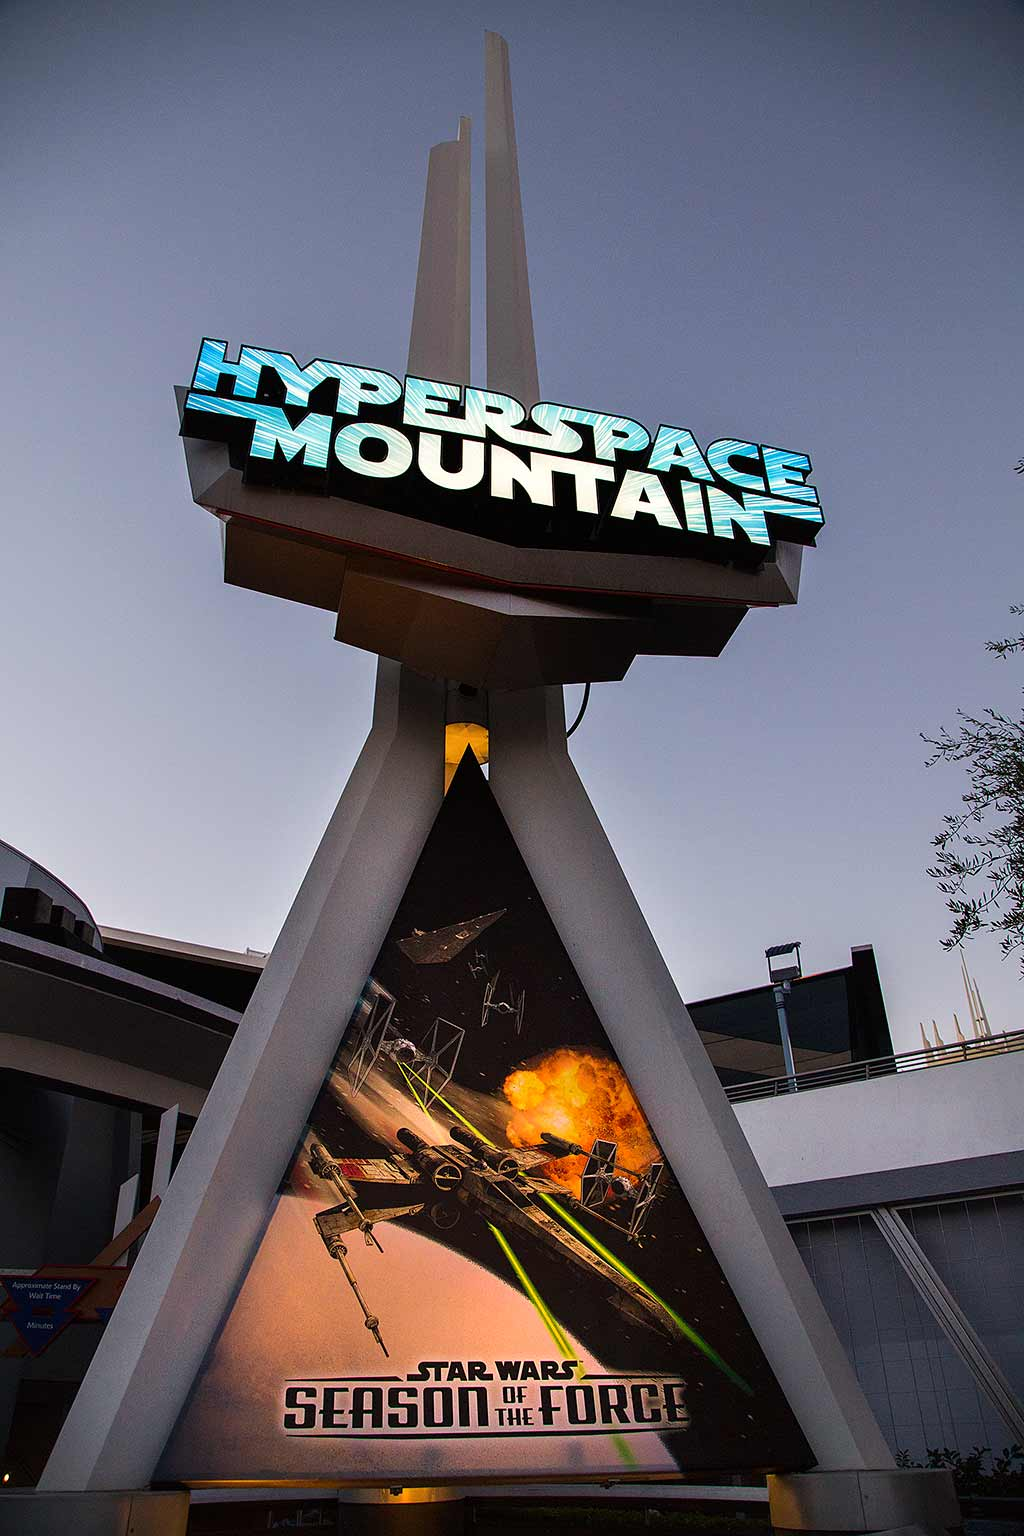 Hyperspace Mountain signage